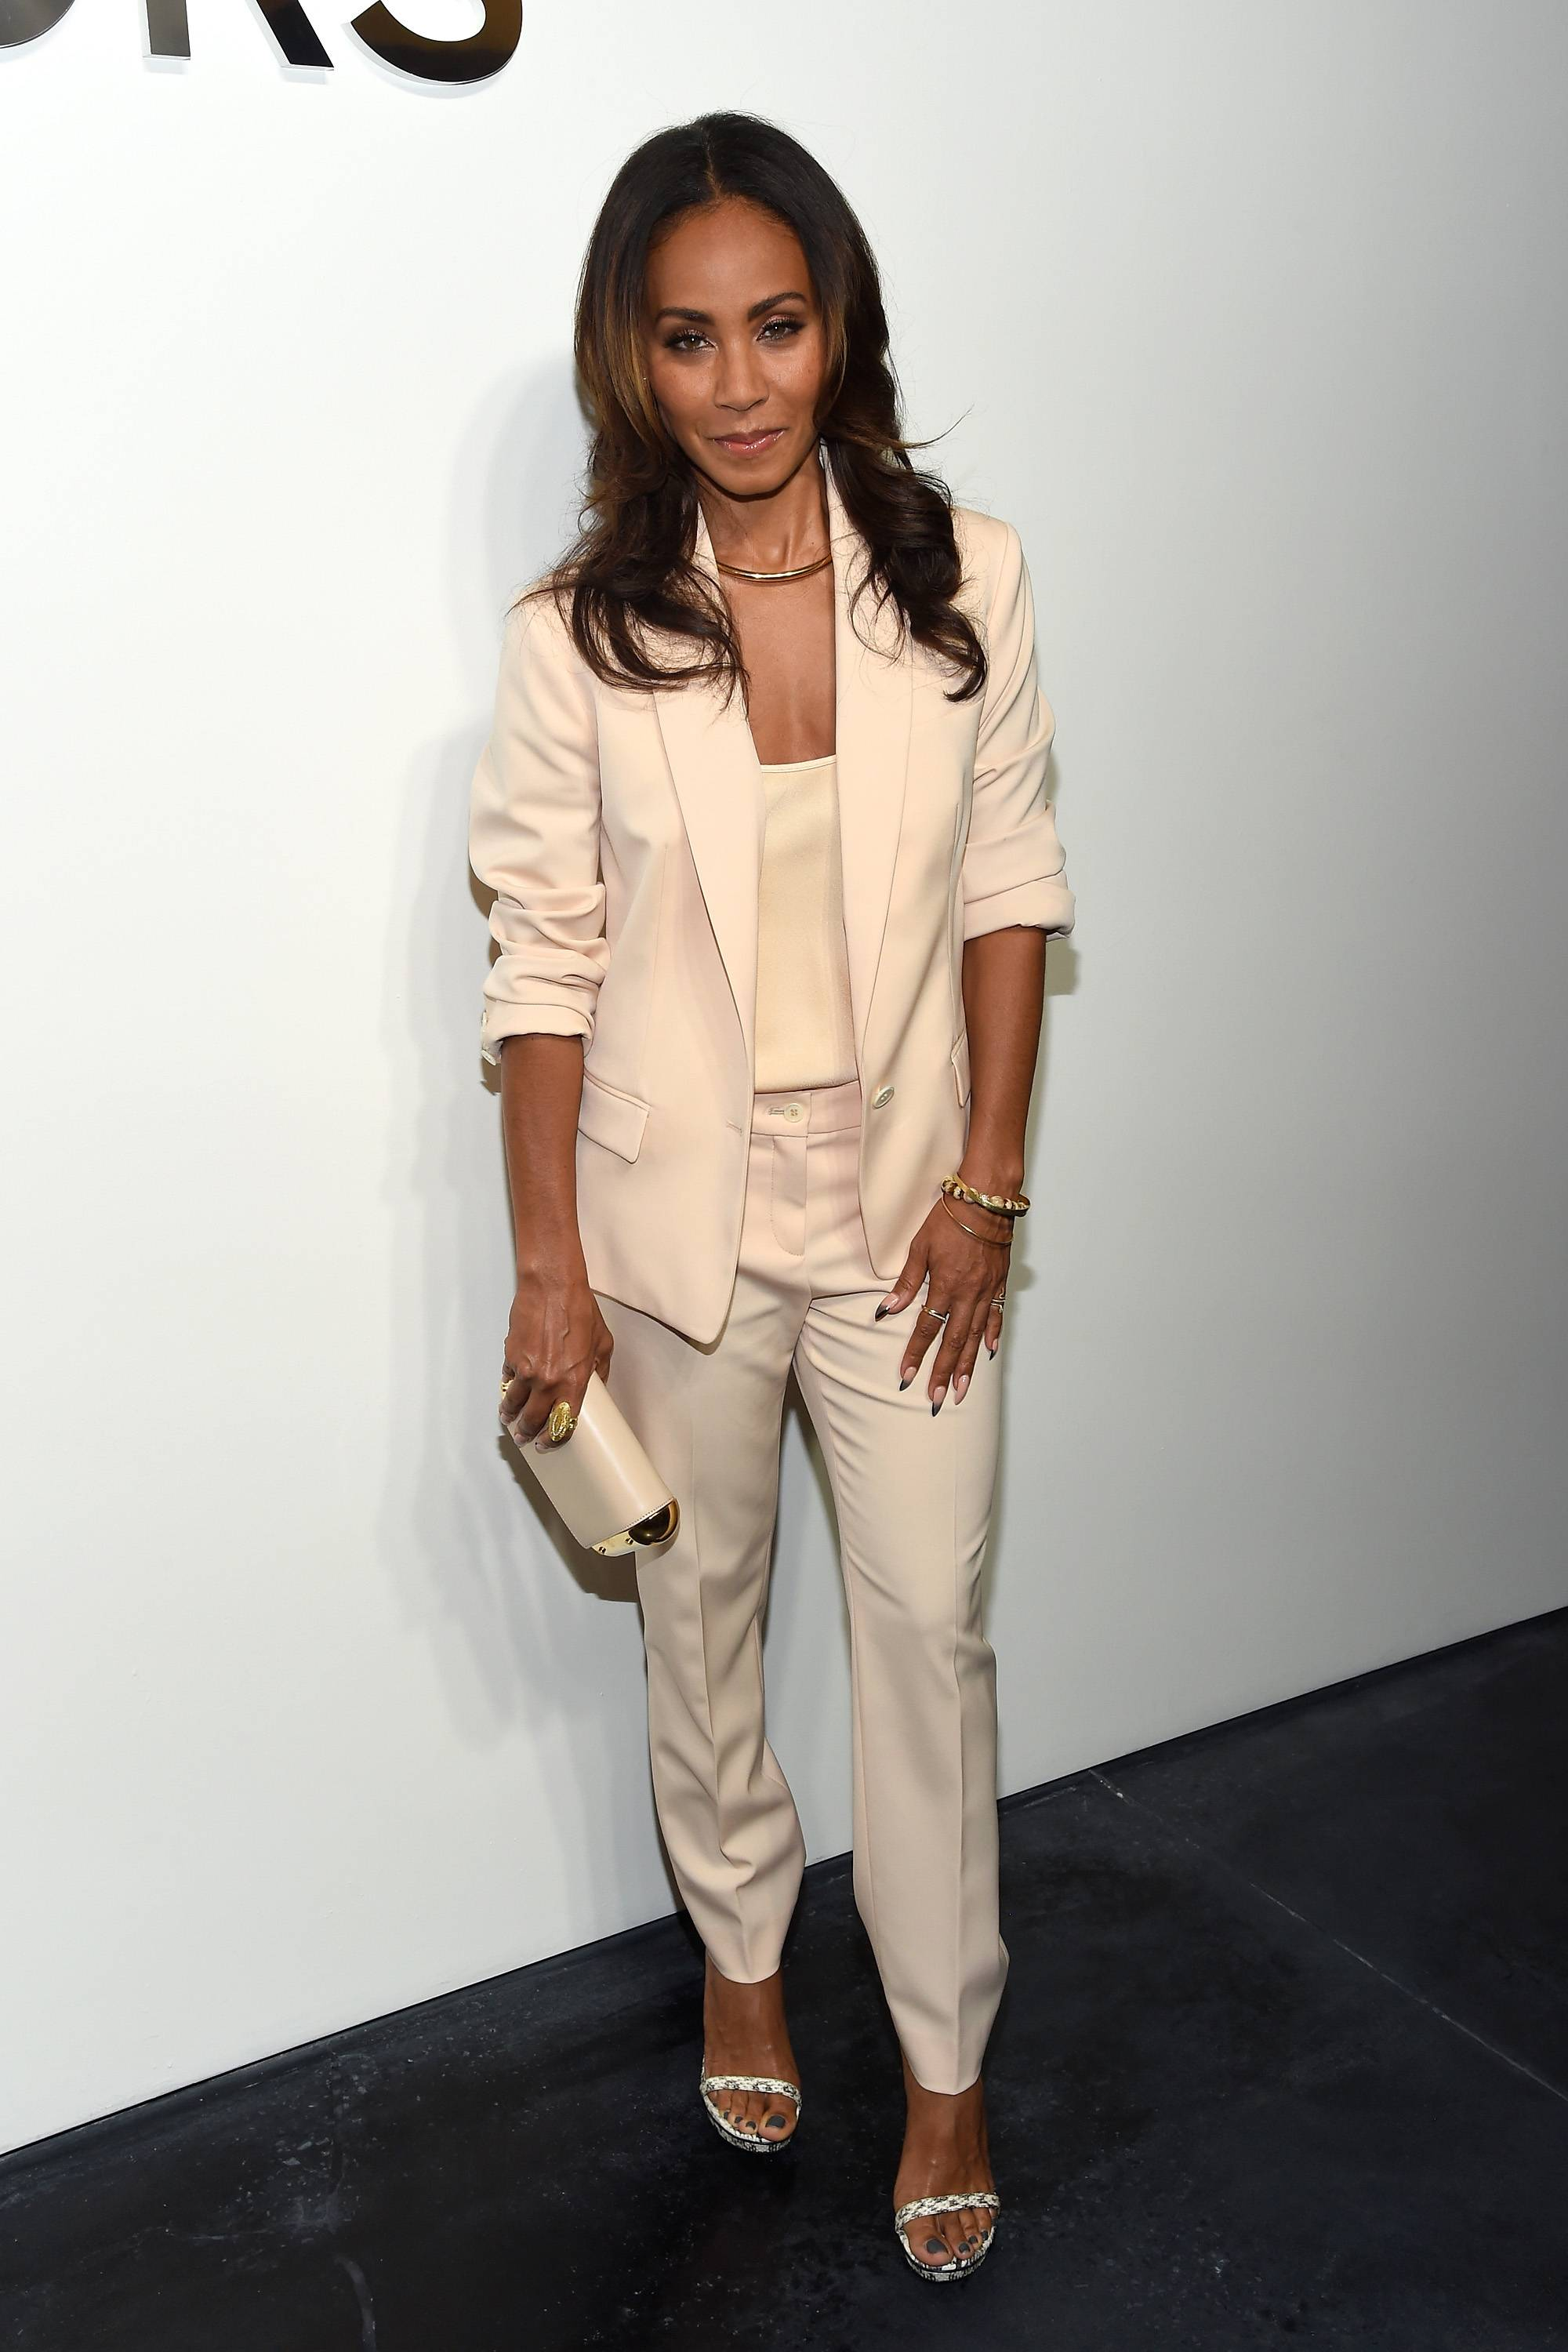 Jada Pinkett Smith - September 16, 2014 - Jada Pinkett-Smith came through to talk about her new character, Fish Mooney in new series Gotham. Watch a clip now!(Photo: Larry Busacca/Getty Images for Michael Kors)